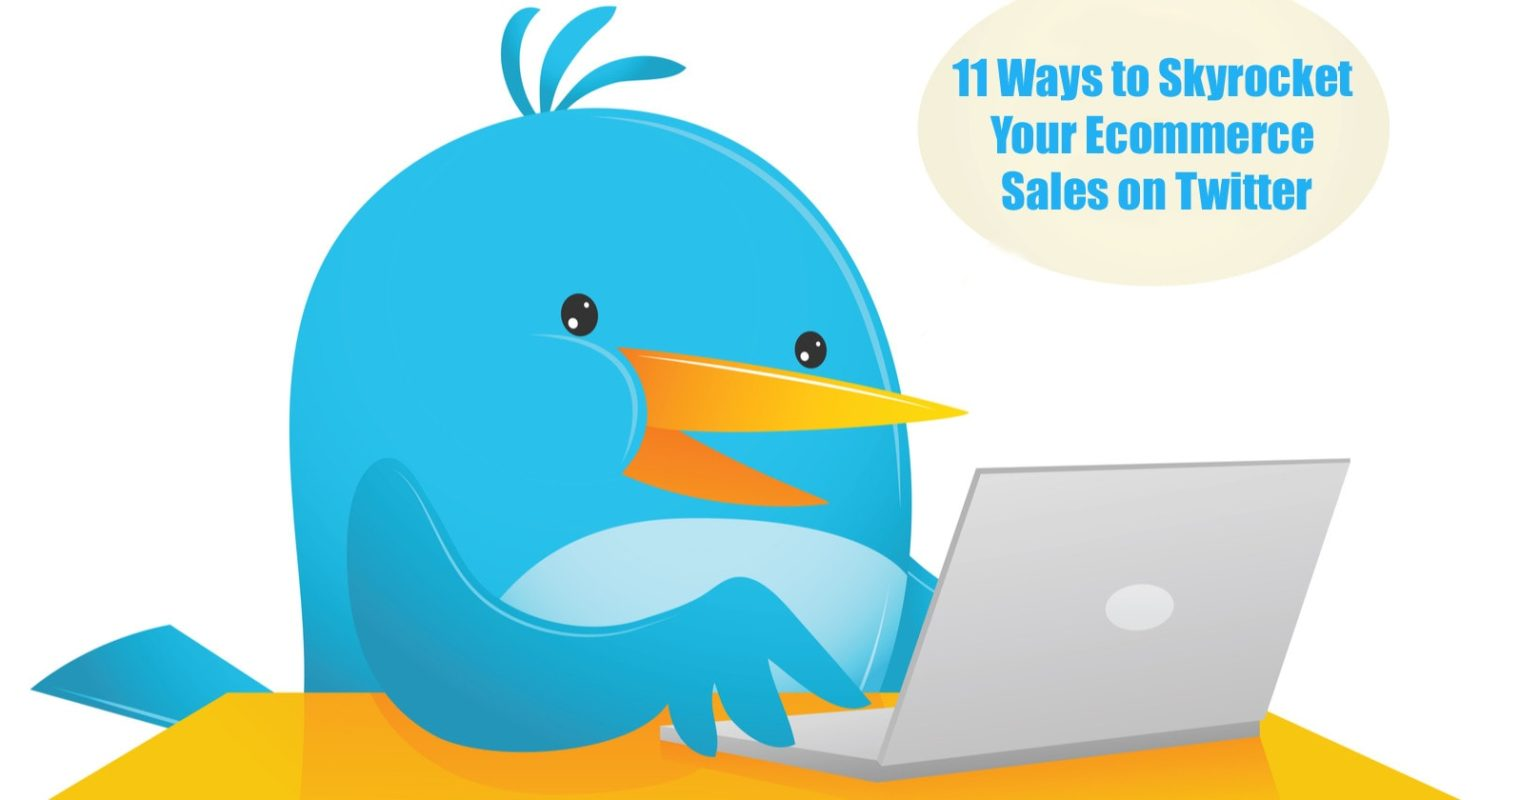 11 Ways to Skyrocket Your Ecommerce Sales on Twitter